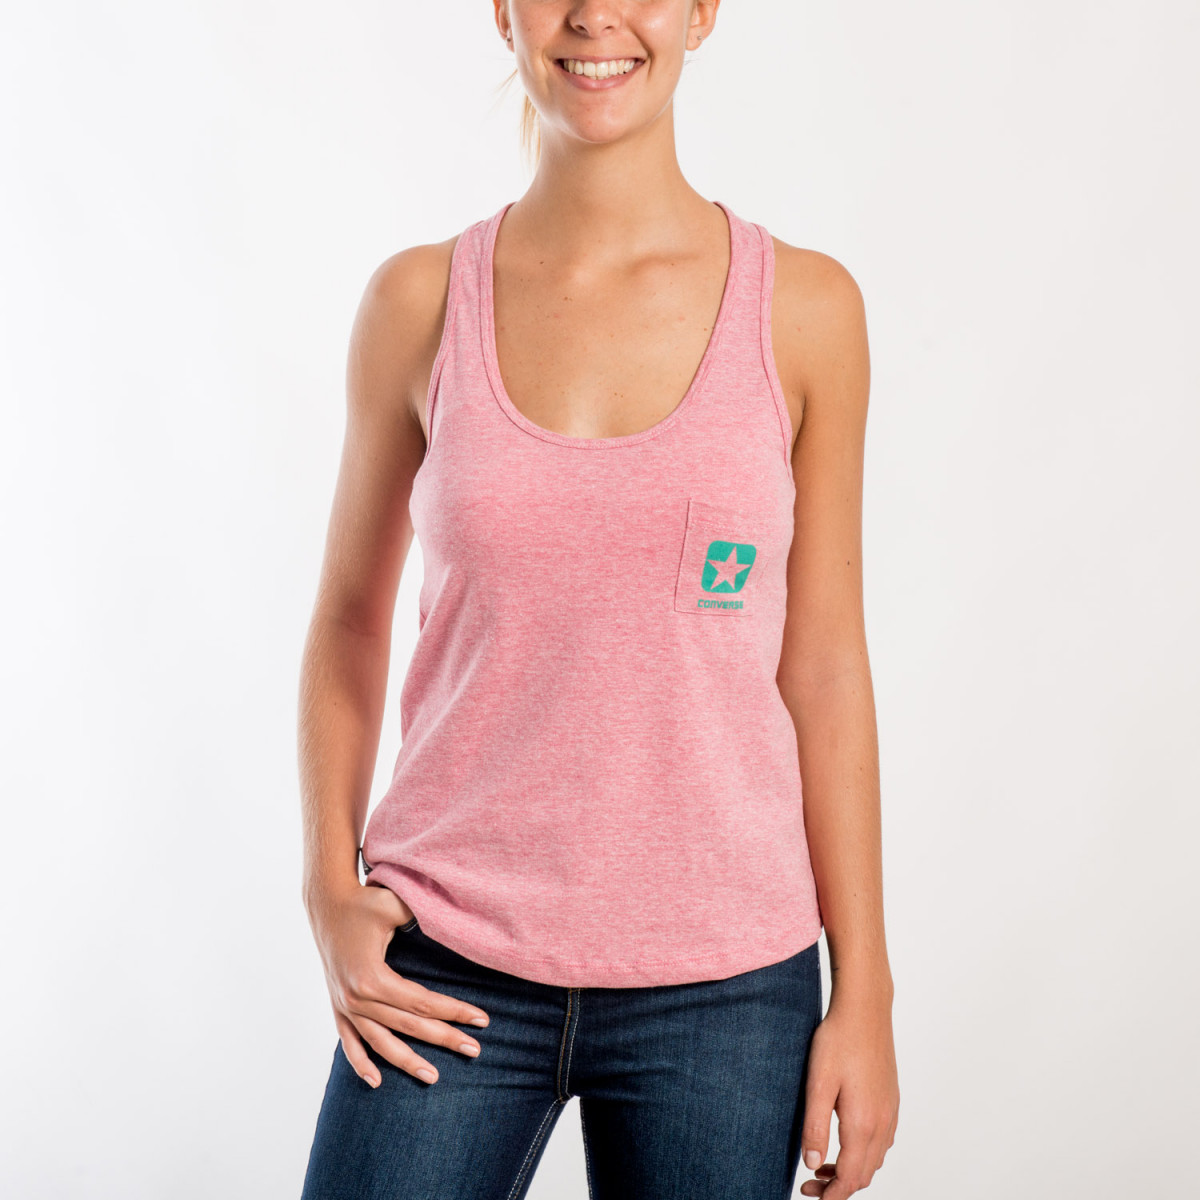 MUSCULOSA CONVERSE THEO TANK